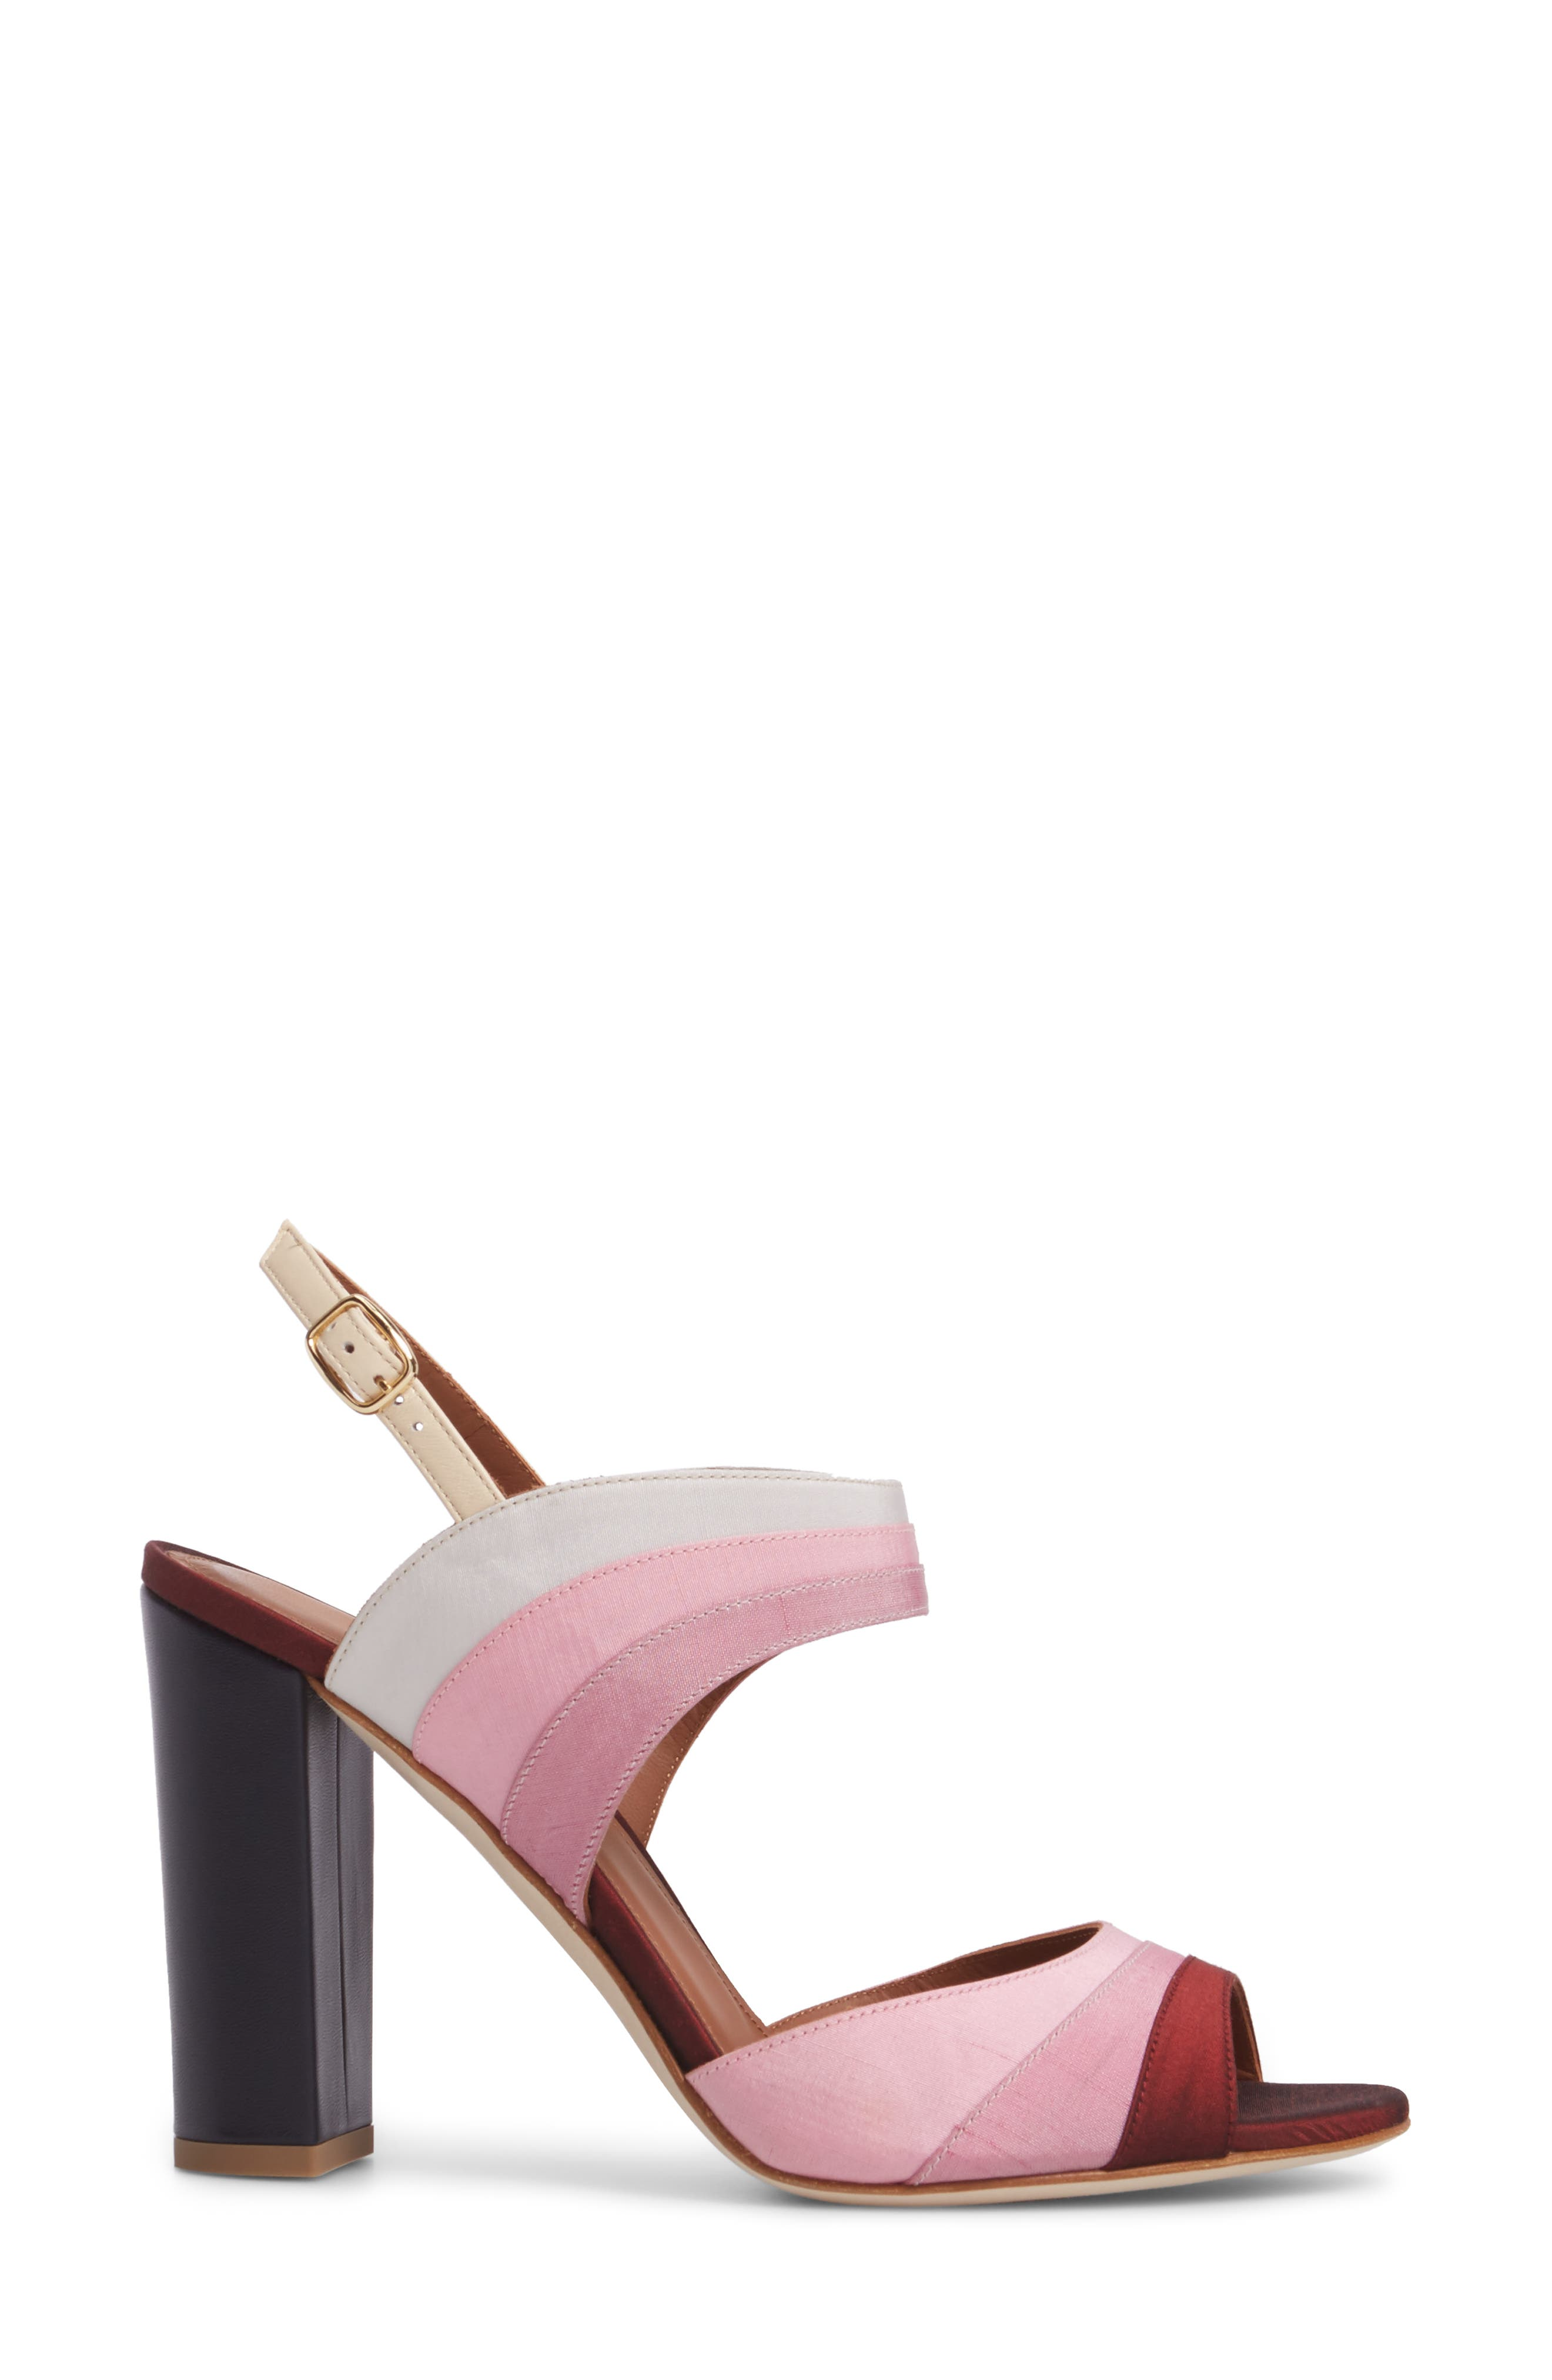 Anita Ombré Slingback Sandal,                             Alternate thumbnail 3, color,                             Peach/ Rose/ Berry/ Wine